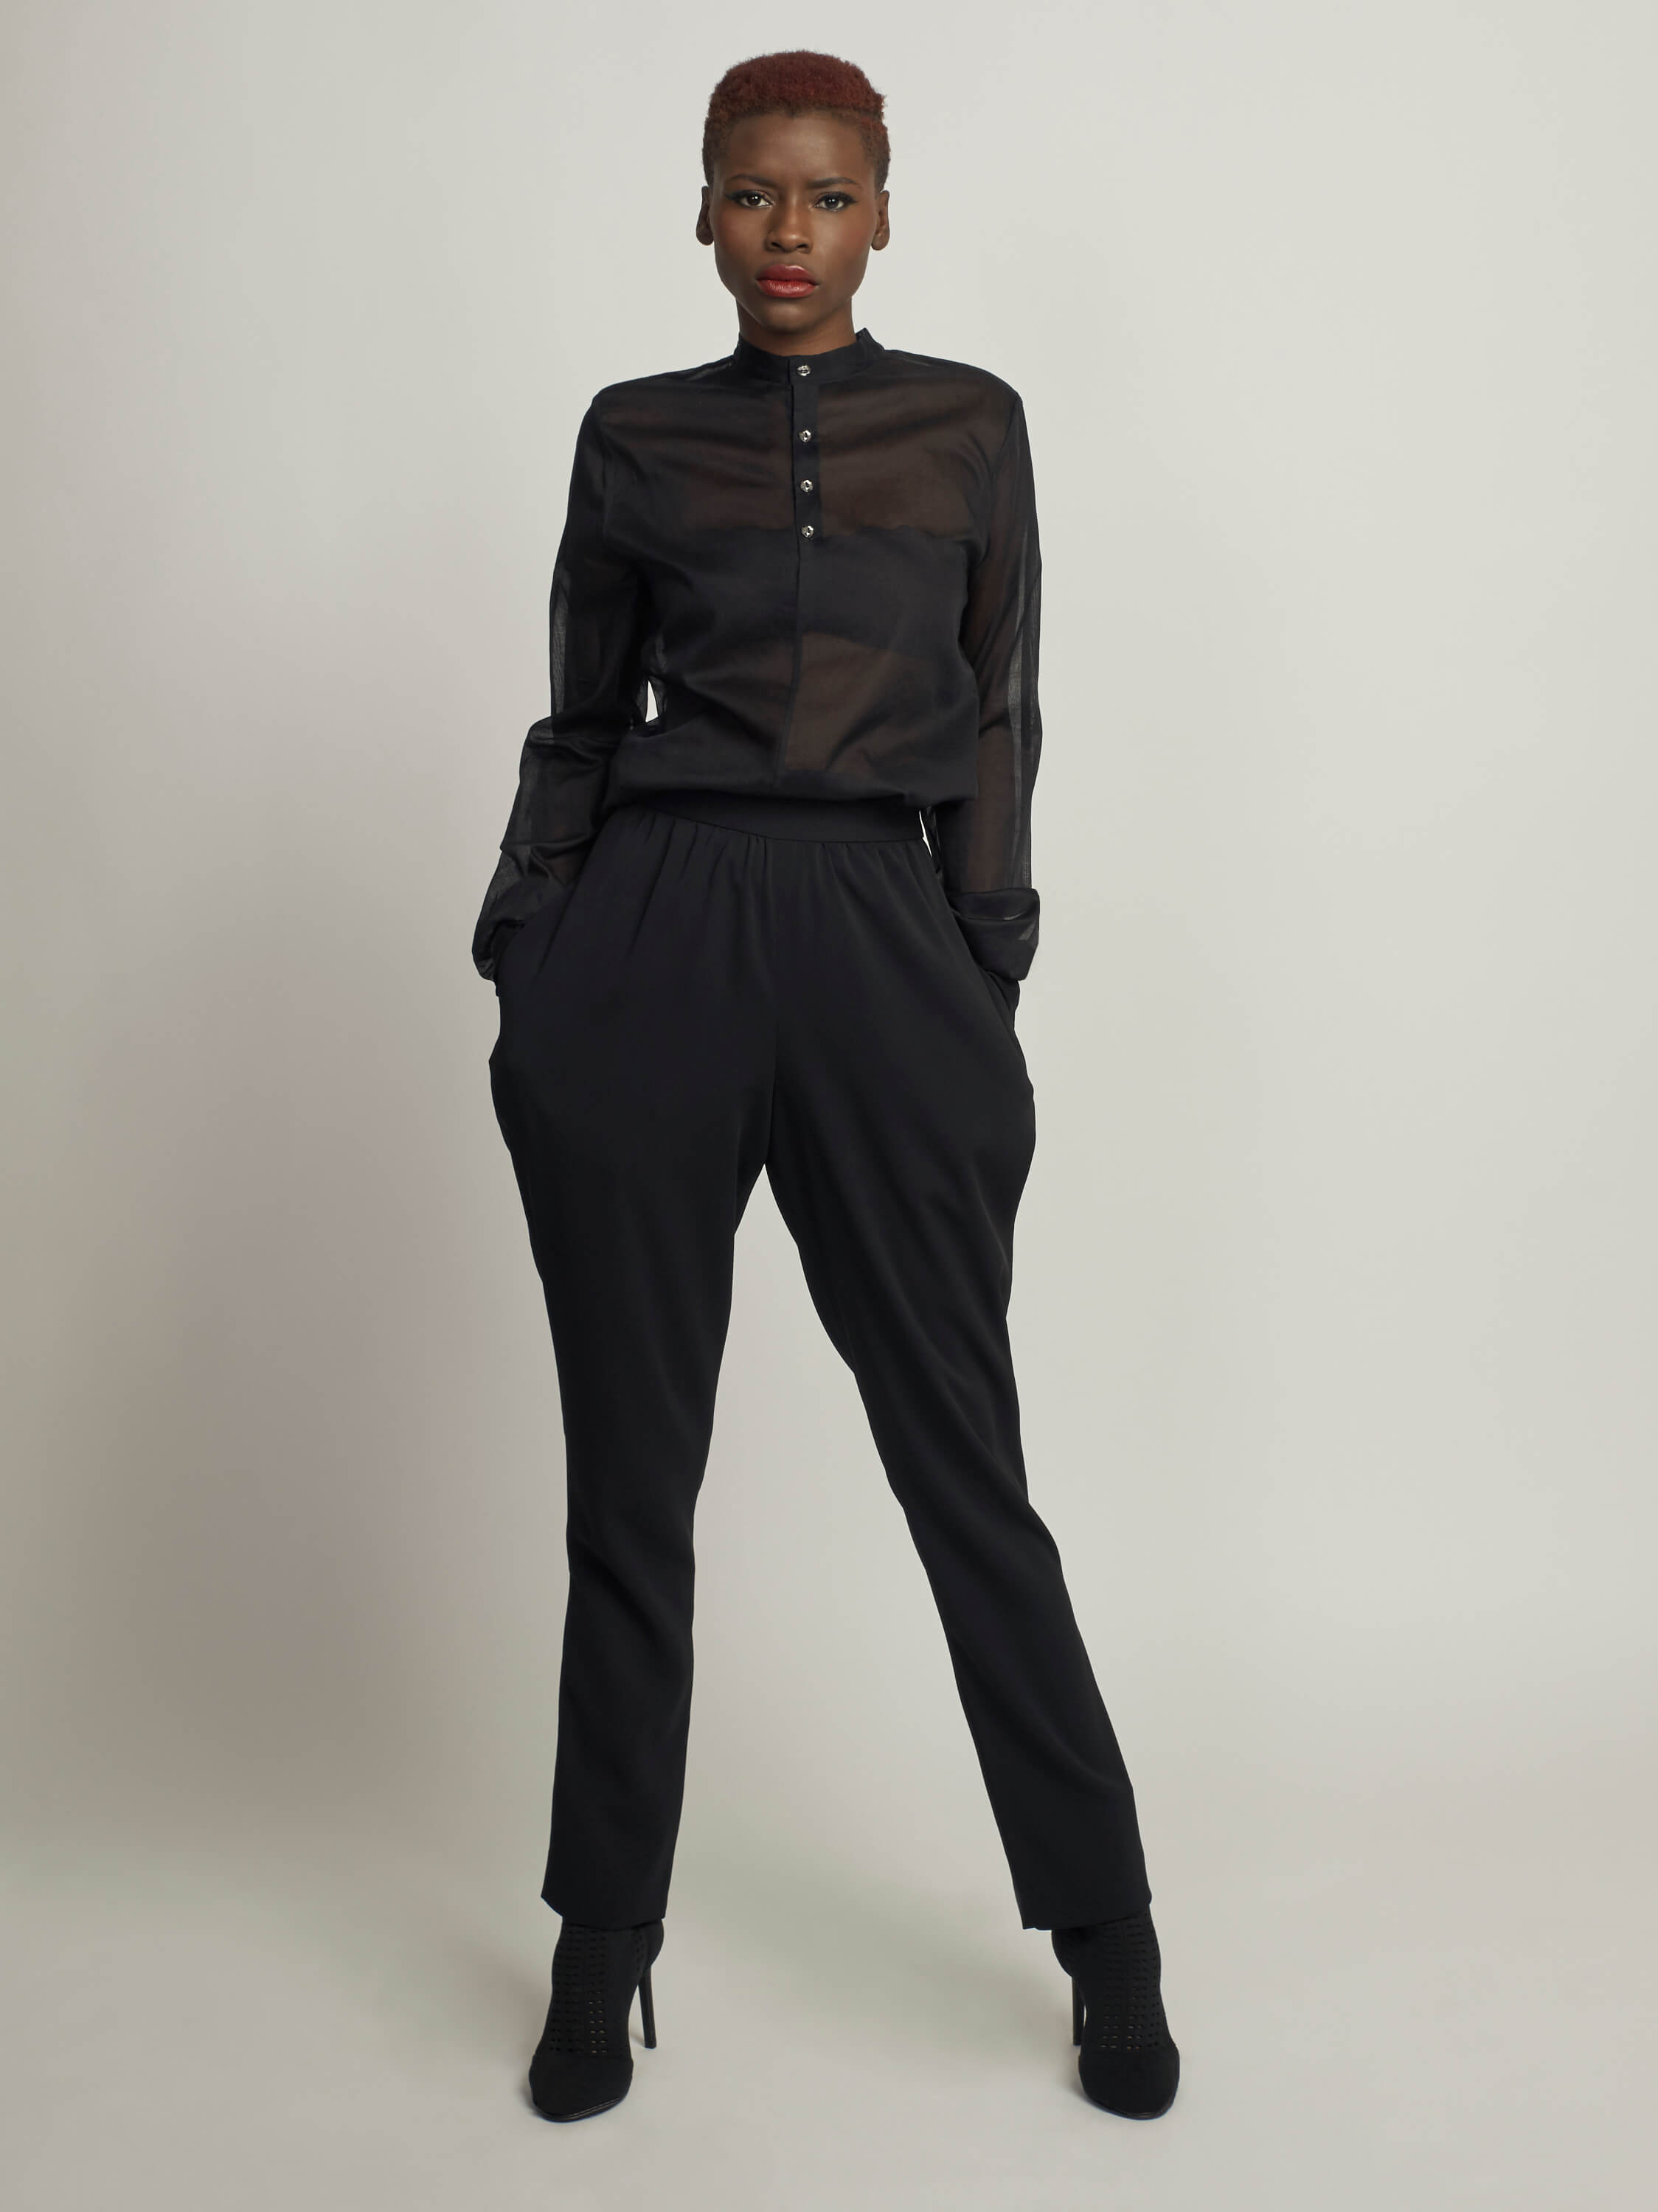 Off-Duty Jodhpurs, Black - Jody Tjan